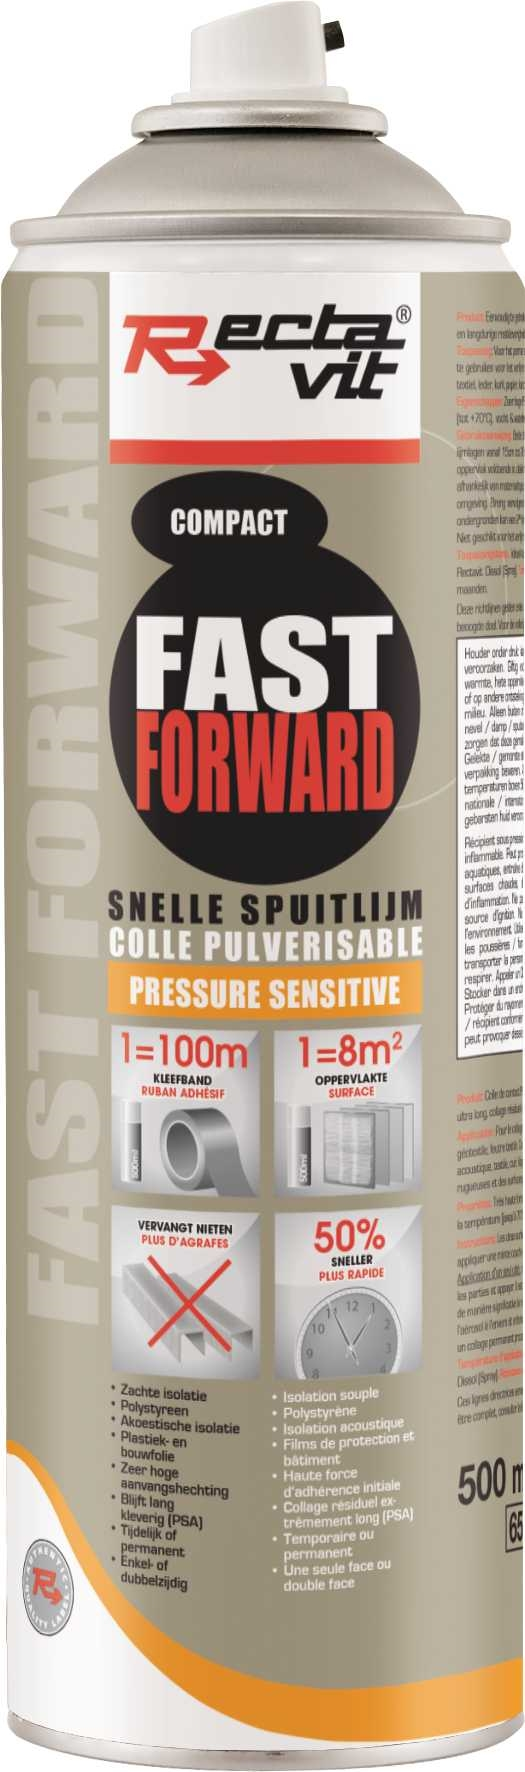 1129 FAST FORWARD COMPACT 500 ml